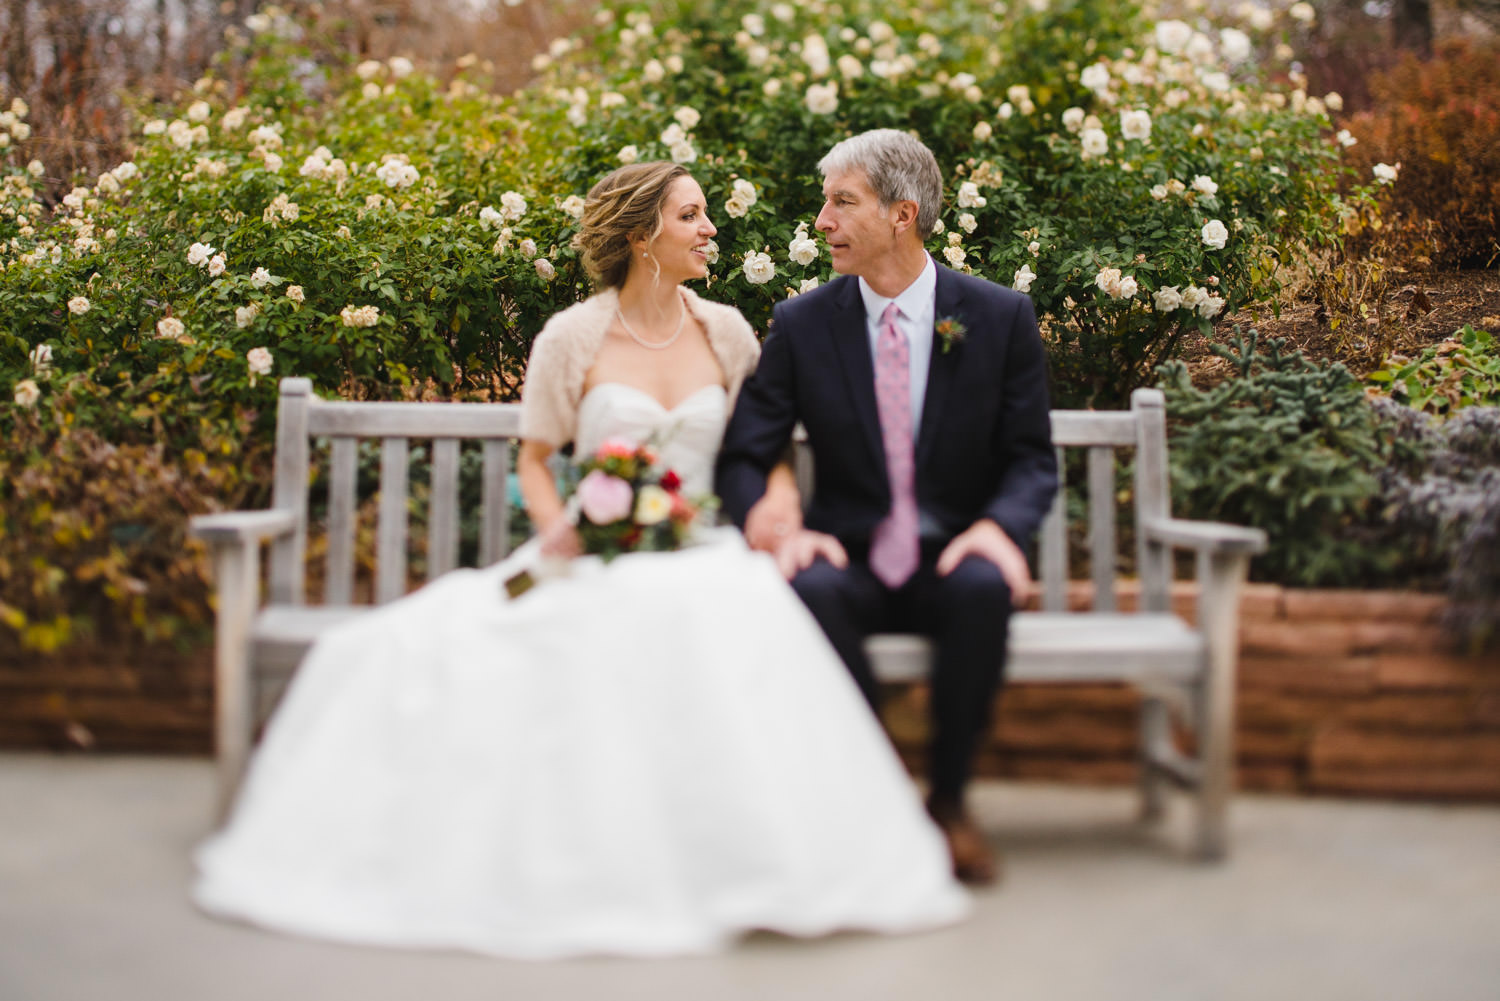 Red Butte Garden wedding bride and groom on bench photo